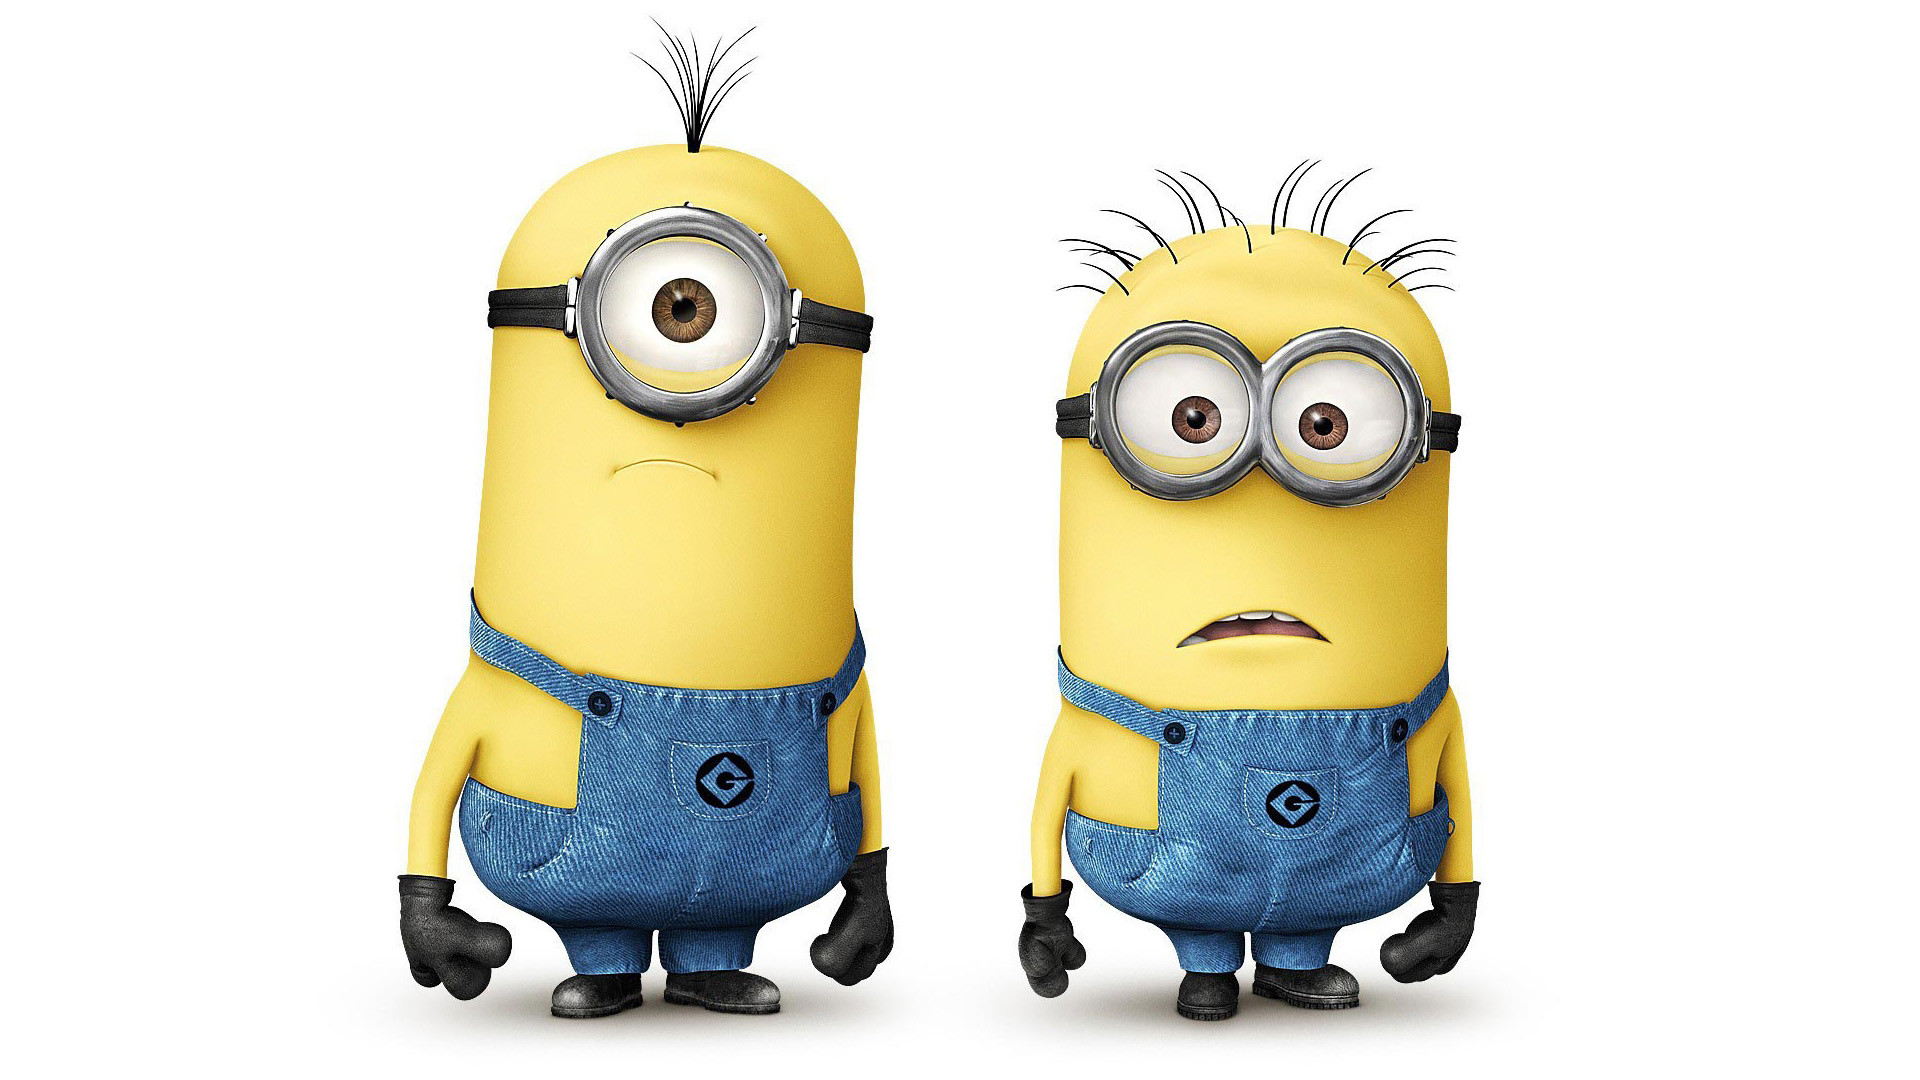 minions hd wallpapers for iphone 6 minions hd wallpapers for iphone 6